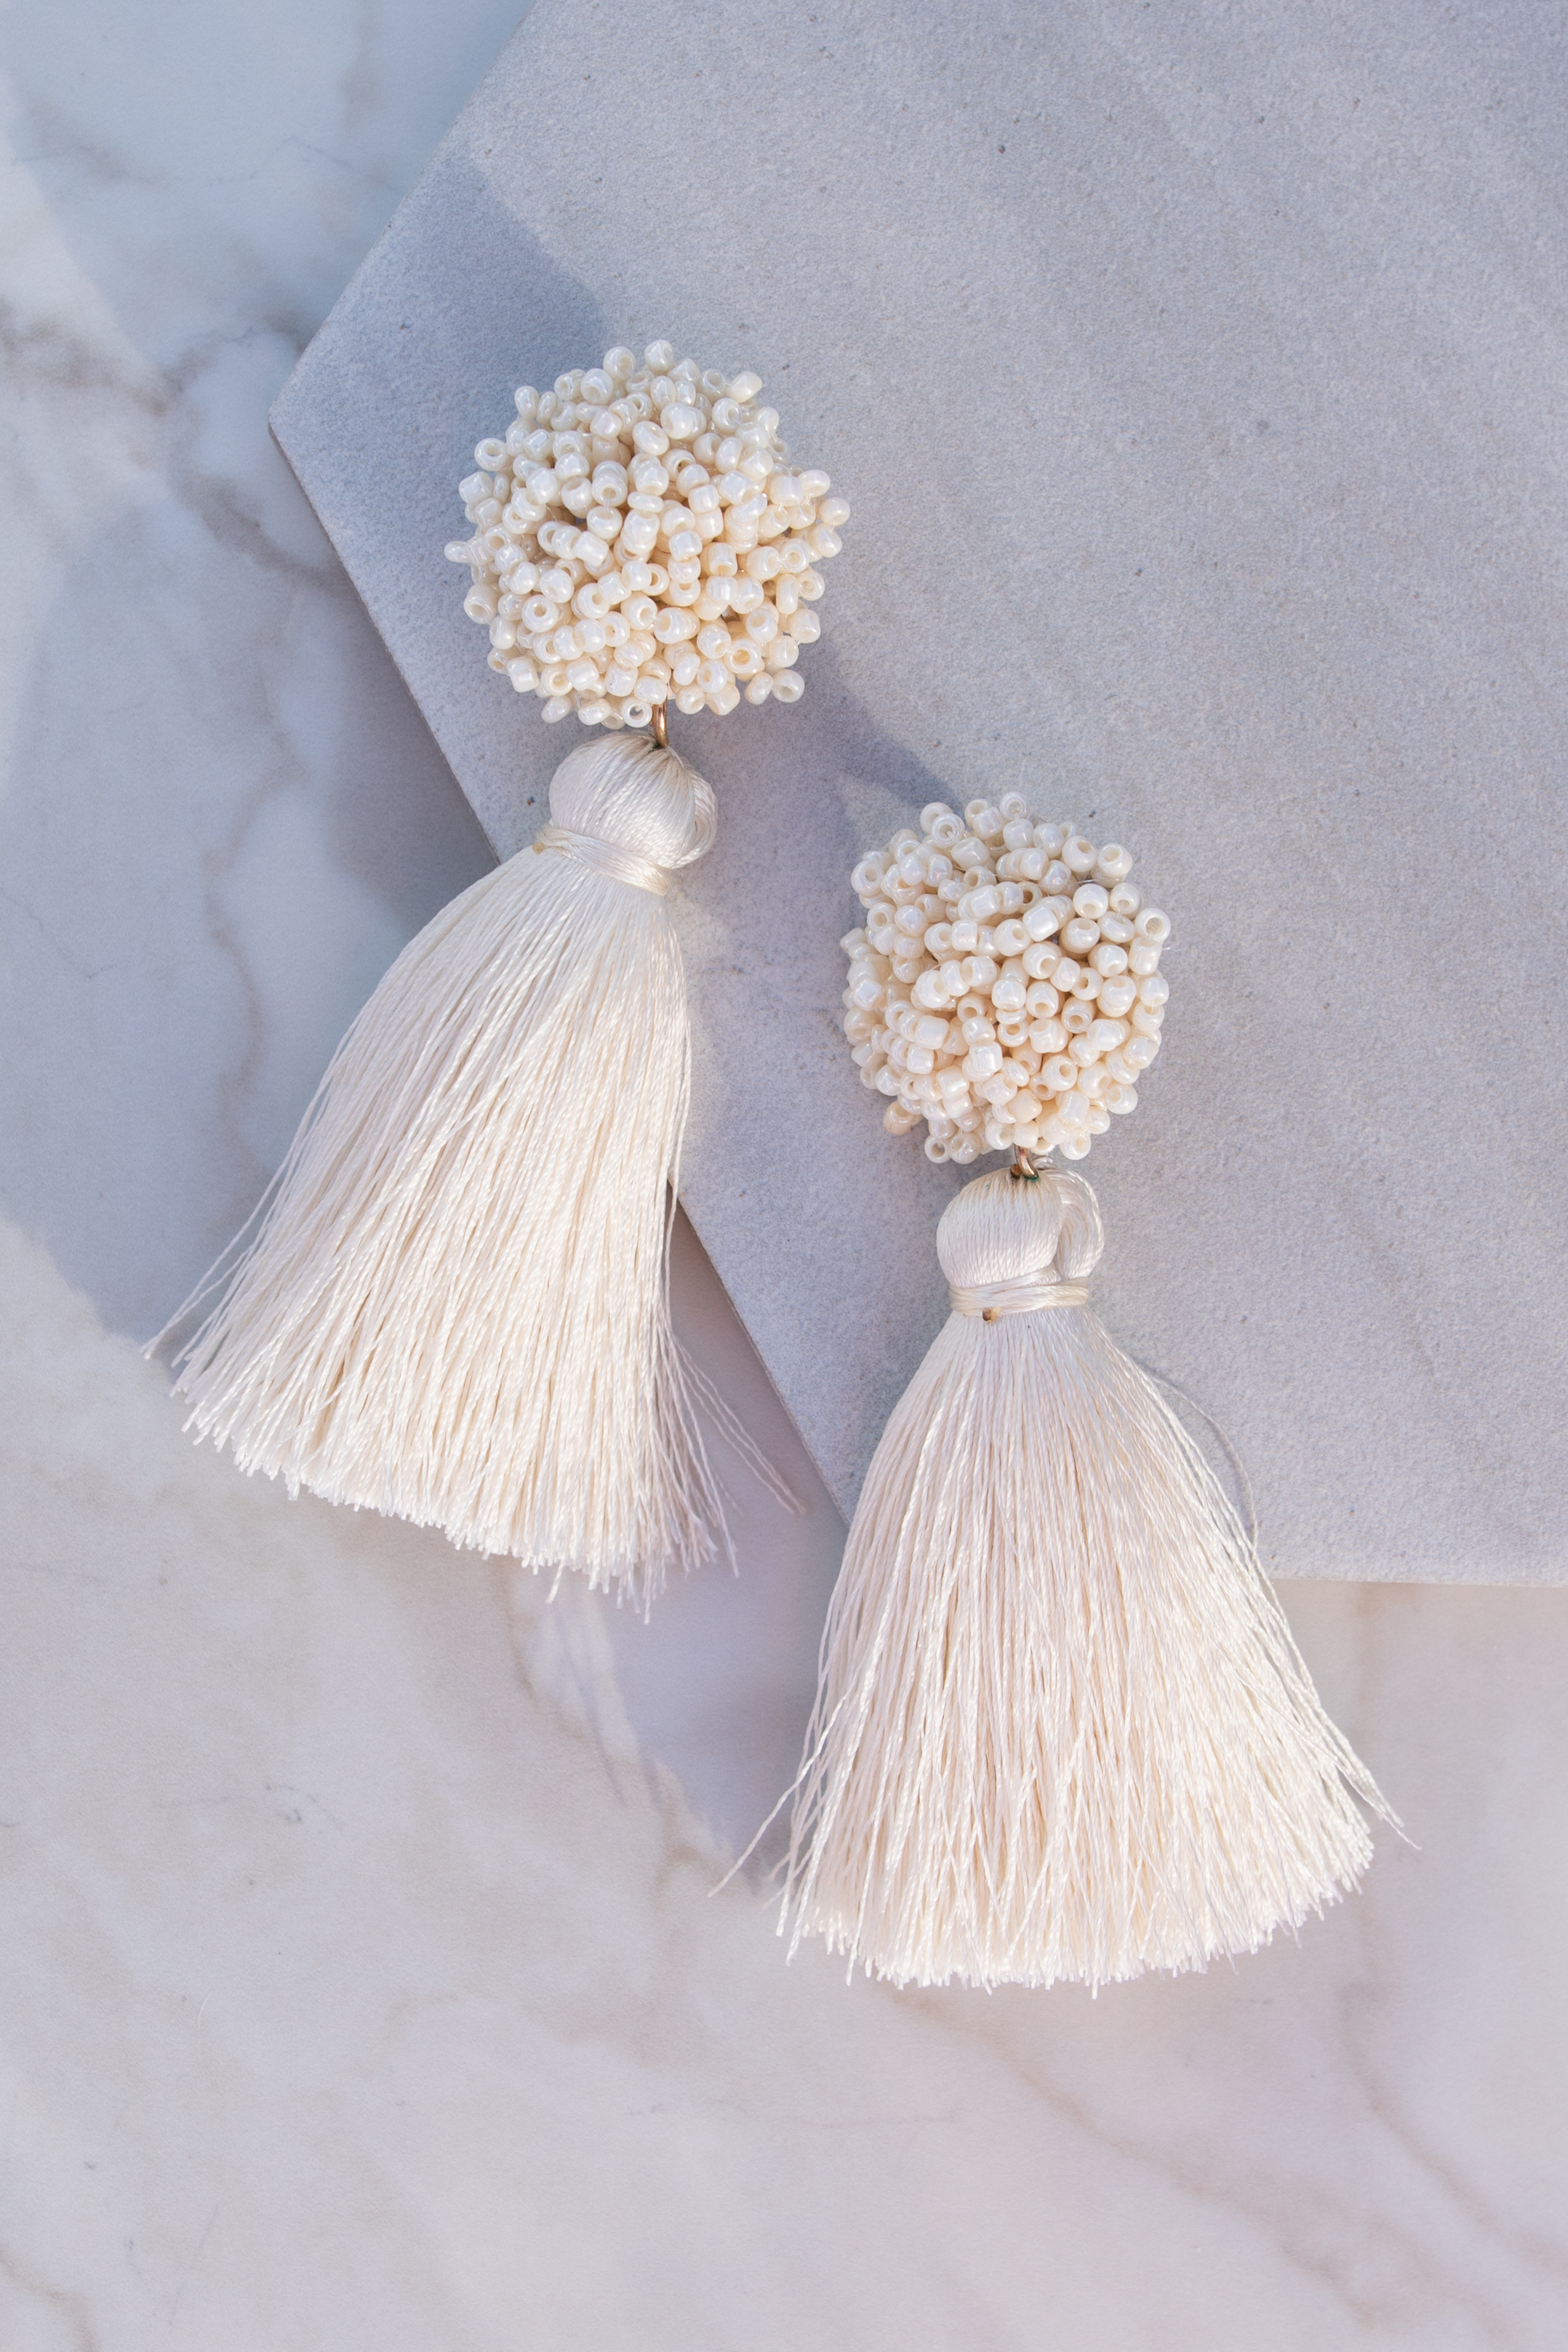 Ivory Dangle Earrings with Seed Beads and Tassel Detail